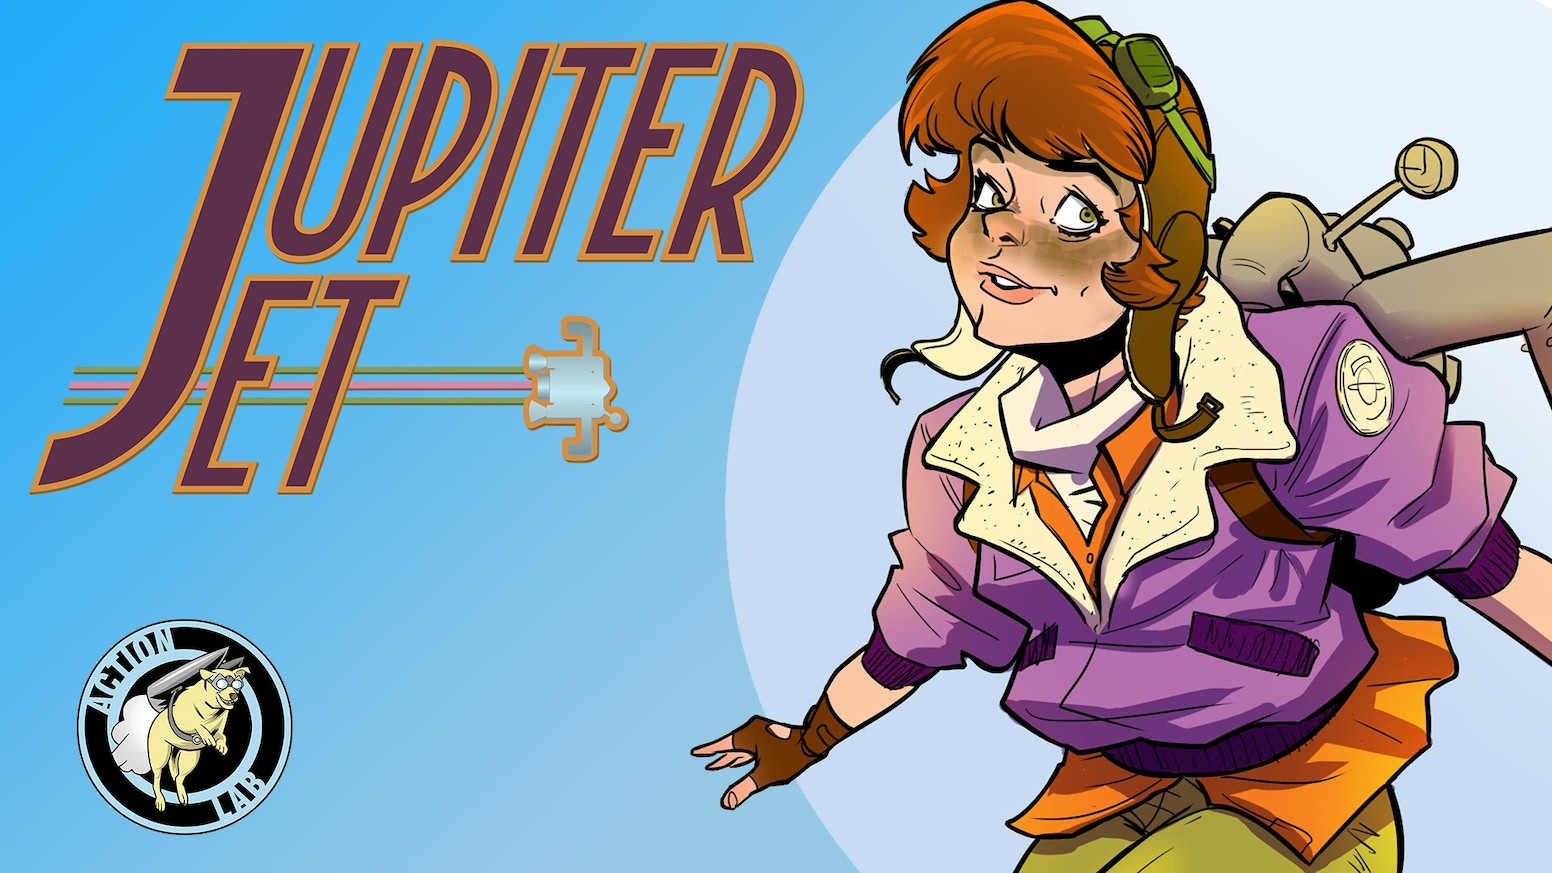 A high-flying all-ages adventure comic by Jason Inman, Ashley Victoria Robinson & Ben Matsuya.